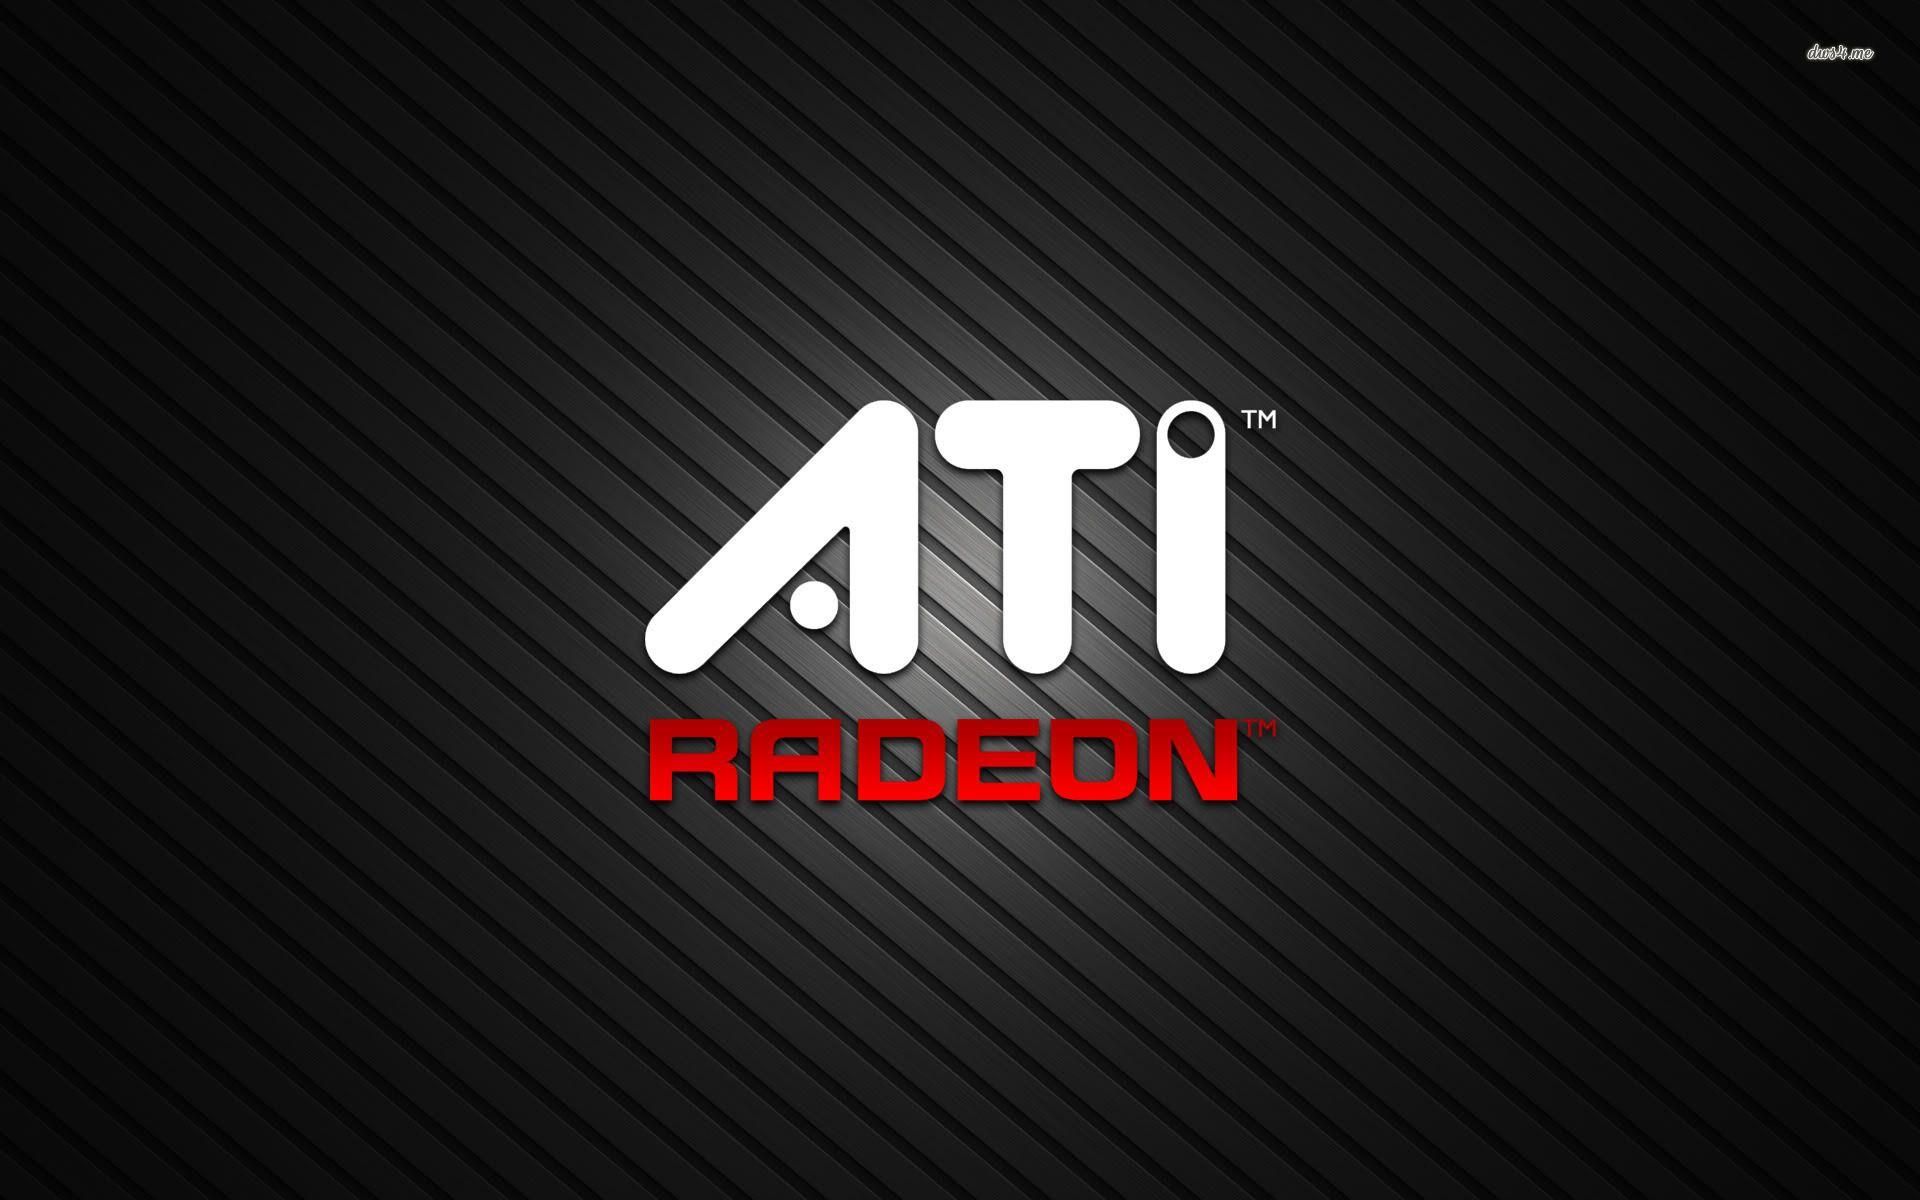 amd radeon wallpapers hd - photo #13